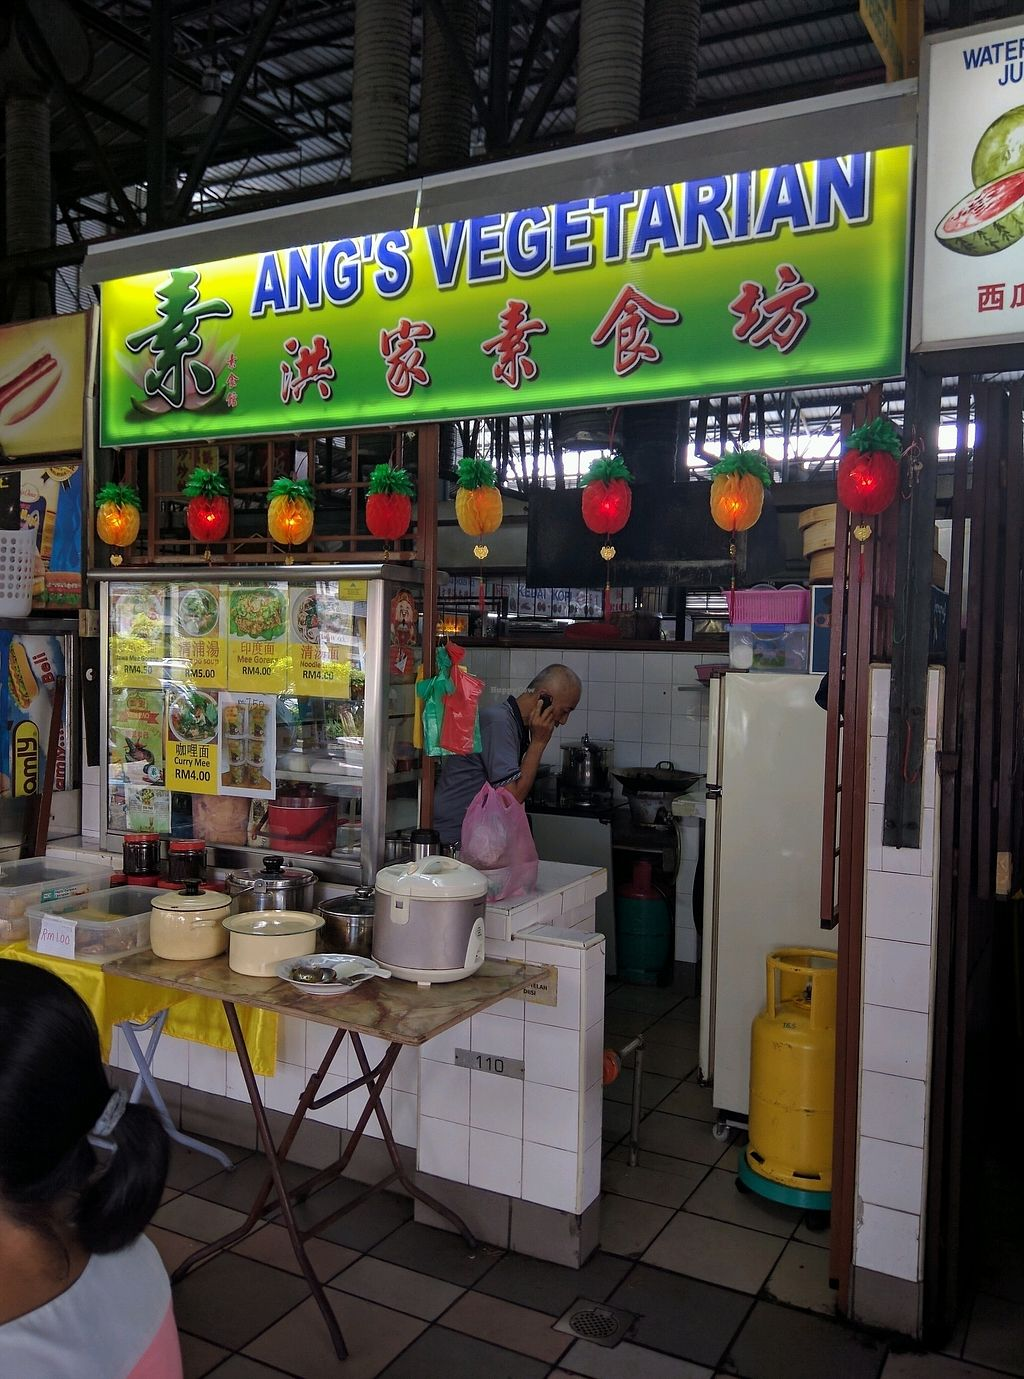 "Photo of Ang's Vegetarian Food Stall  by <a href=""/members/profile/Summer_Tan"">Summer_Tan</a> <br/>The Stall <br/> February 3, 2018  - <a href='/contact/abuse/image/102917/354512'>Report</a>"